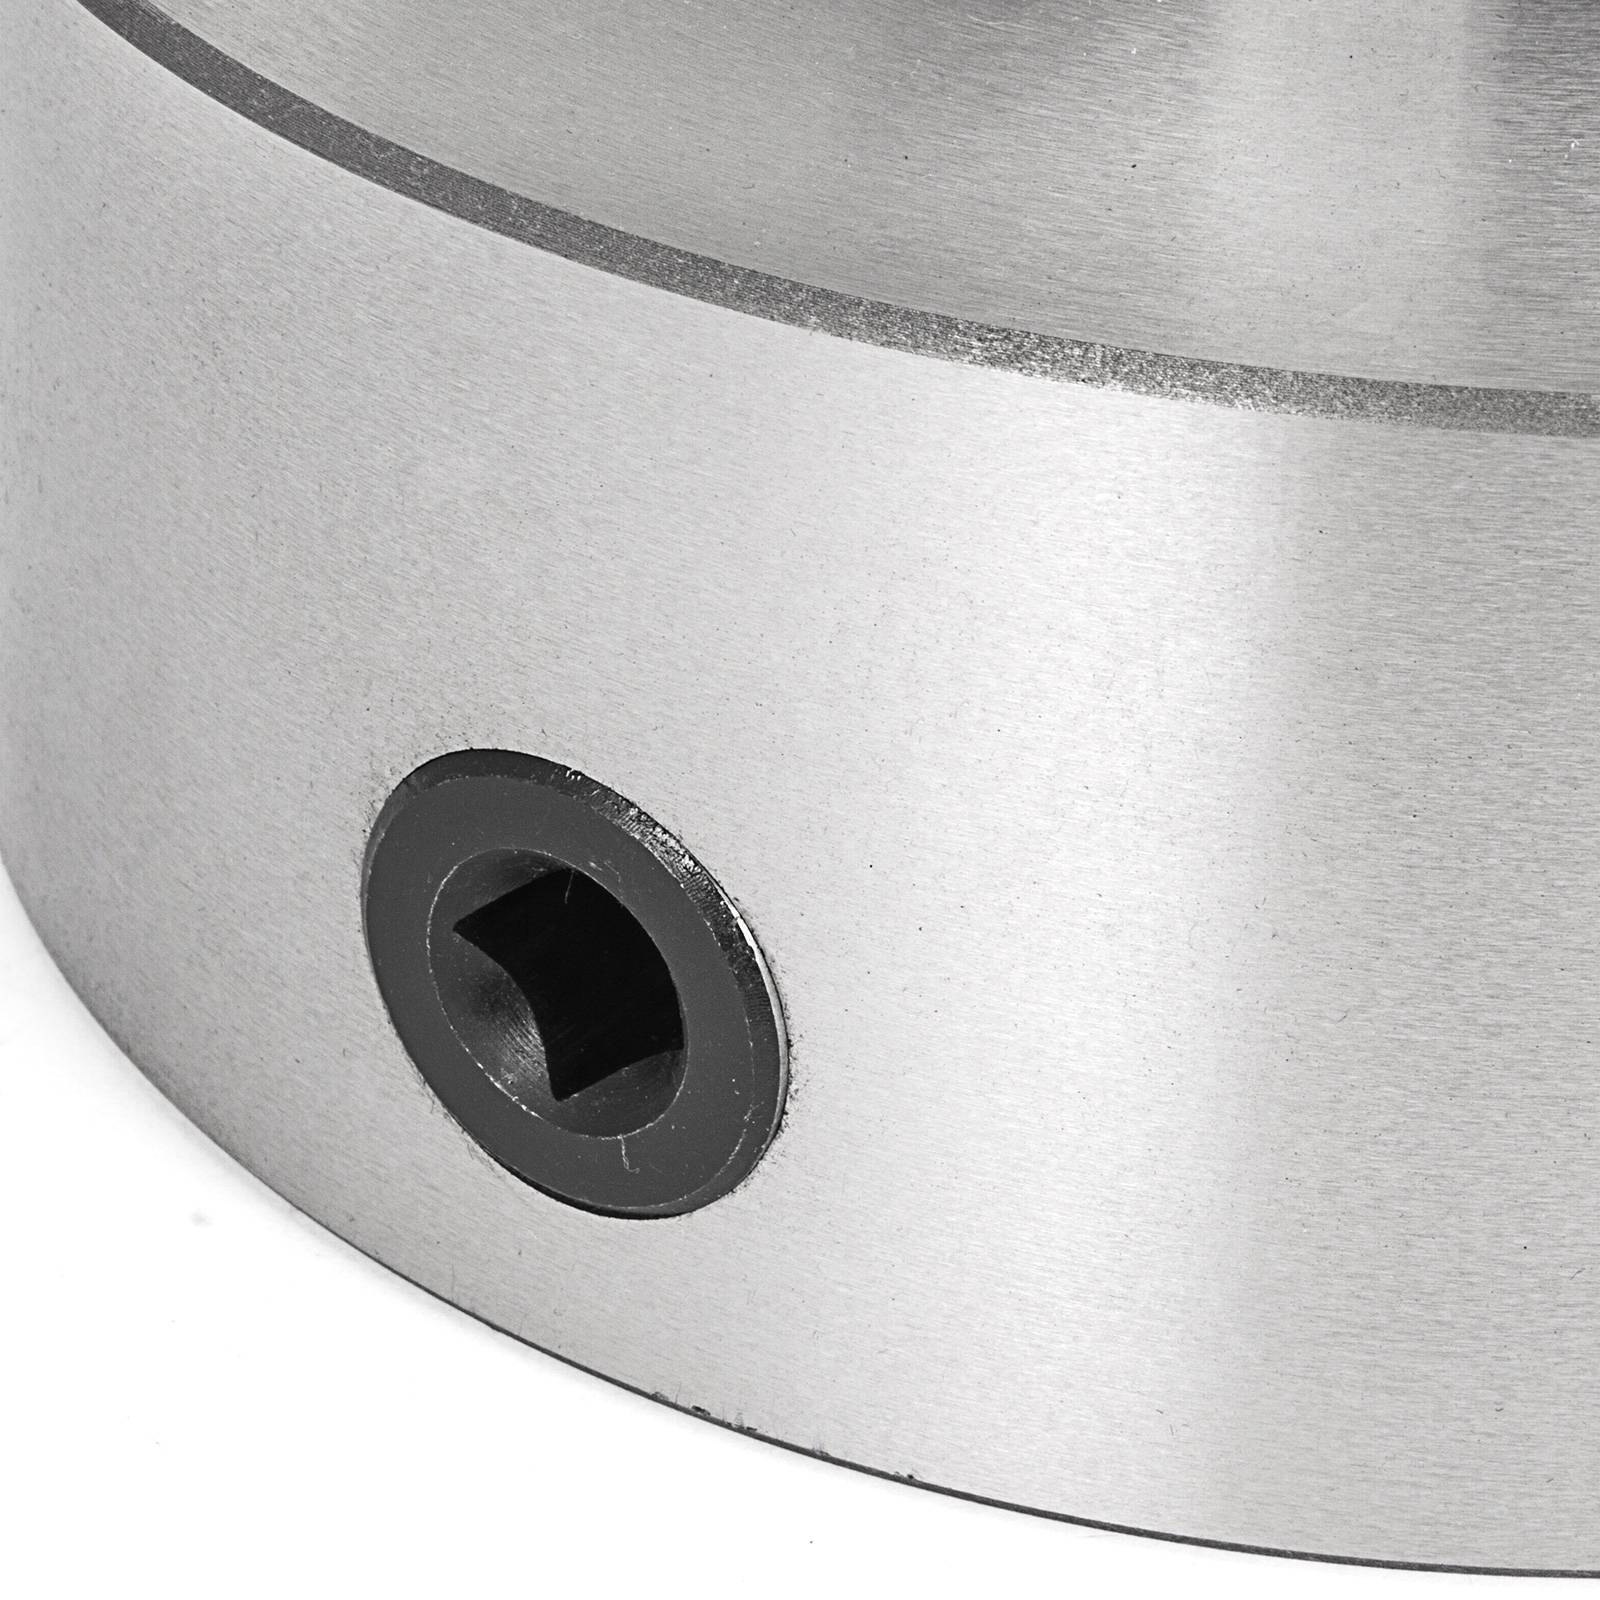 160-400mm-3-Jaw-Metal-Lathe-Chuck-Reversible-Independent-Key-Handle thumbnail 67